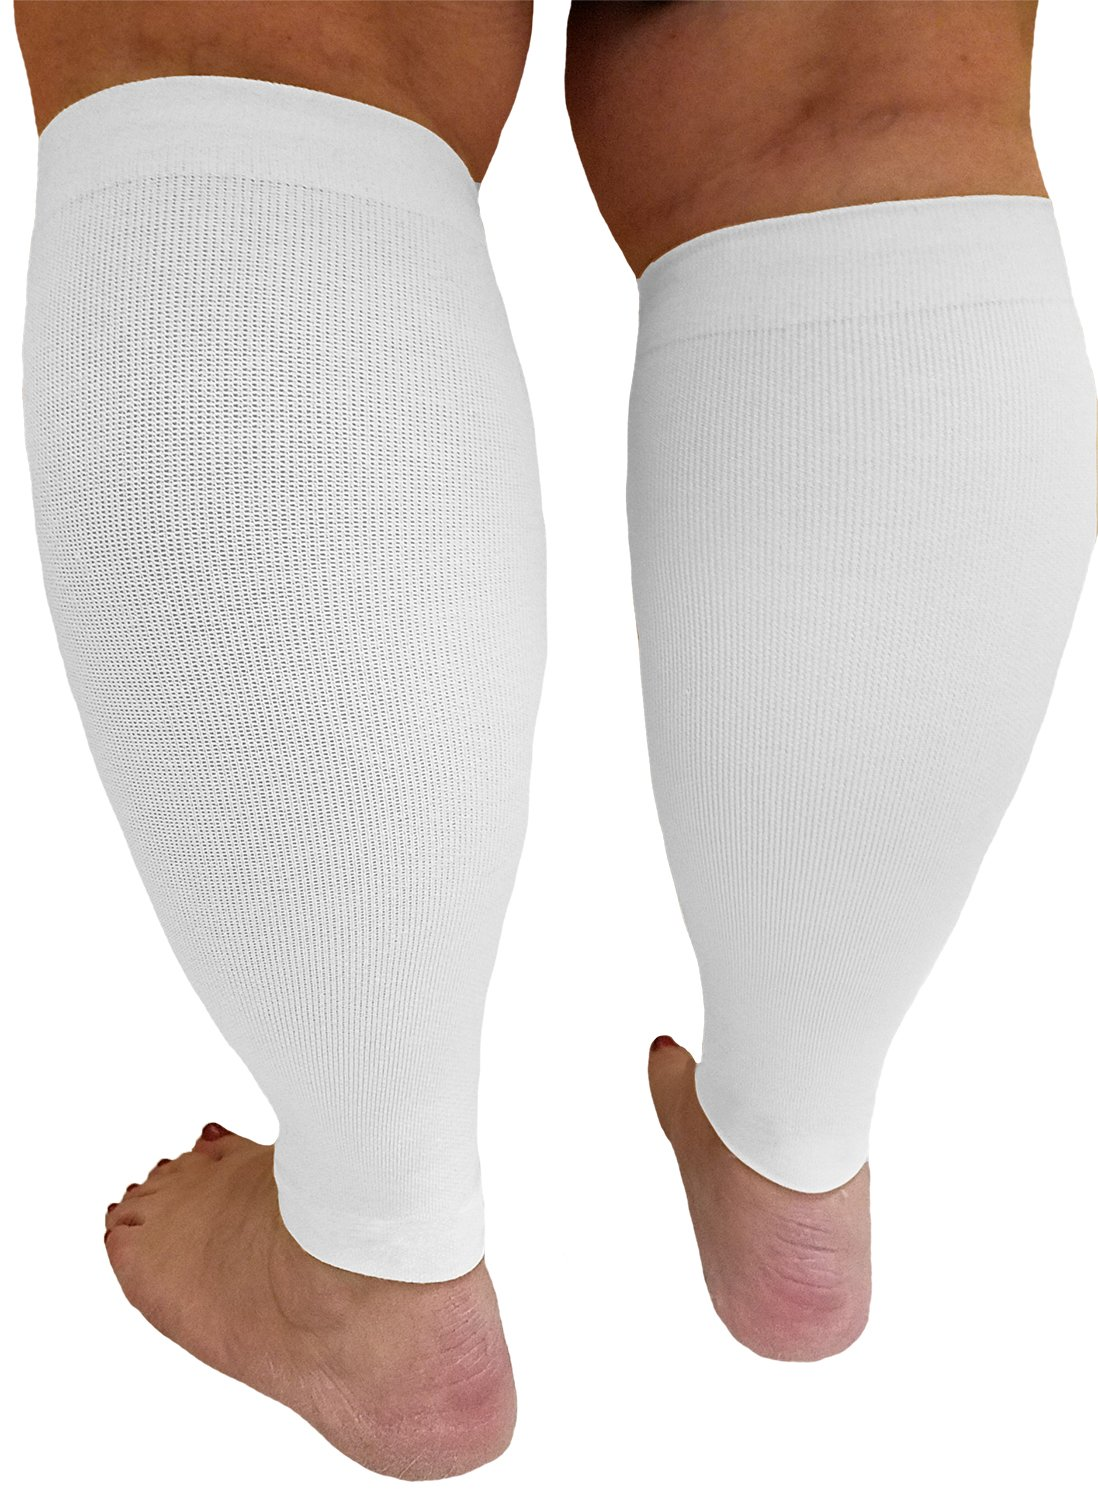 Compression Calf Sleeves Extra Wide - Soothing Gradient Support. XX-Wide Legs, Compression 18-20mmHg at Ankle and 14-16mmHg at Calves, Comfortable Tall Cuffs. Maximum stretch to 27 in. Unisex, white